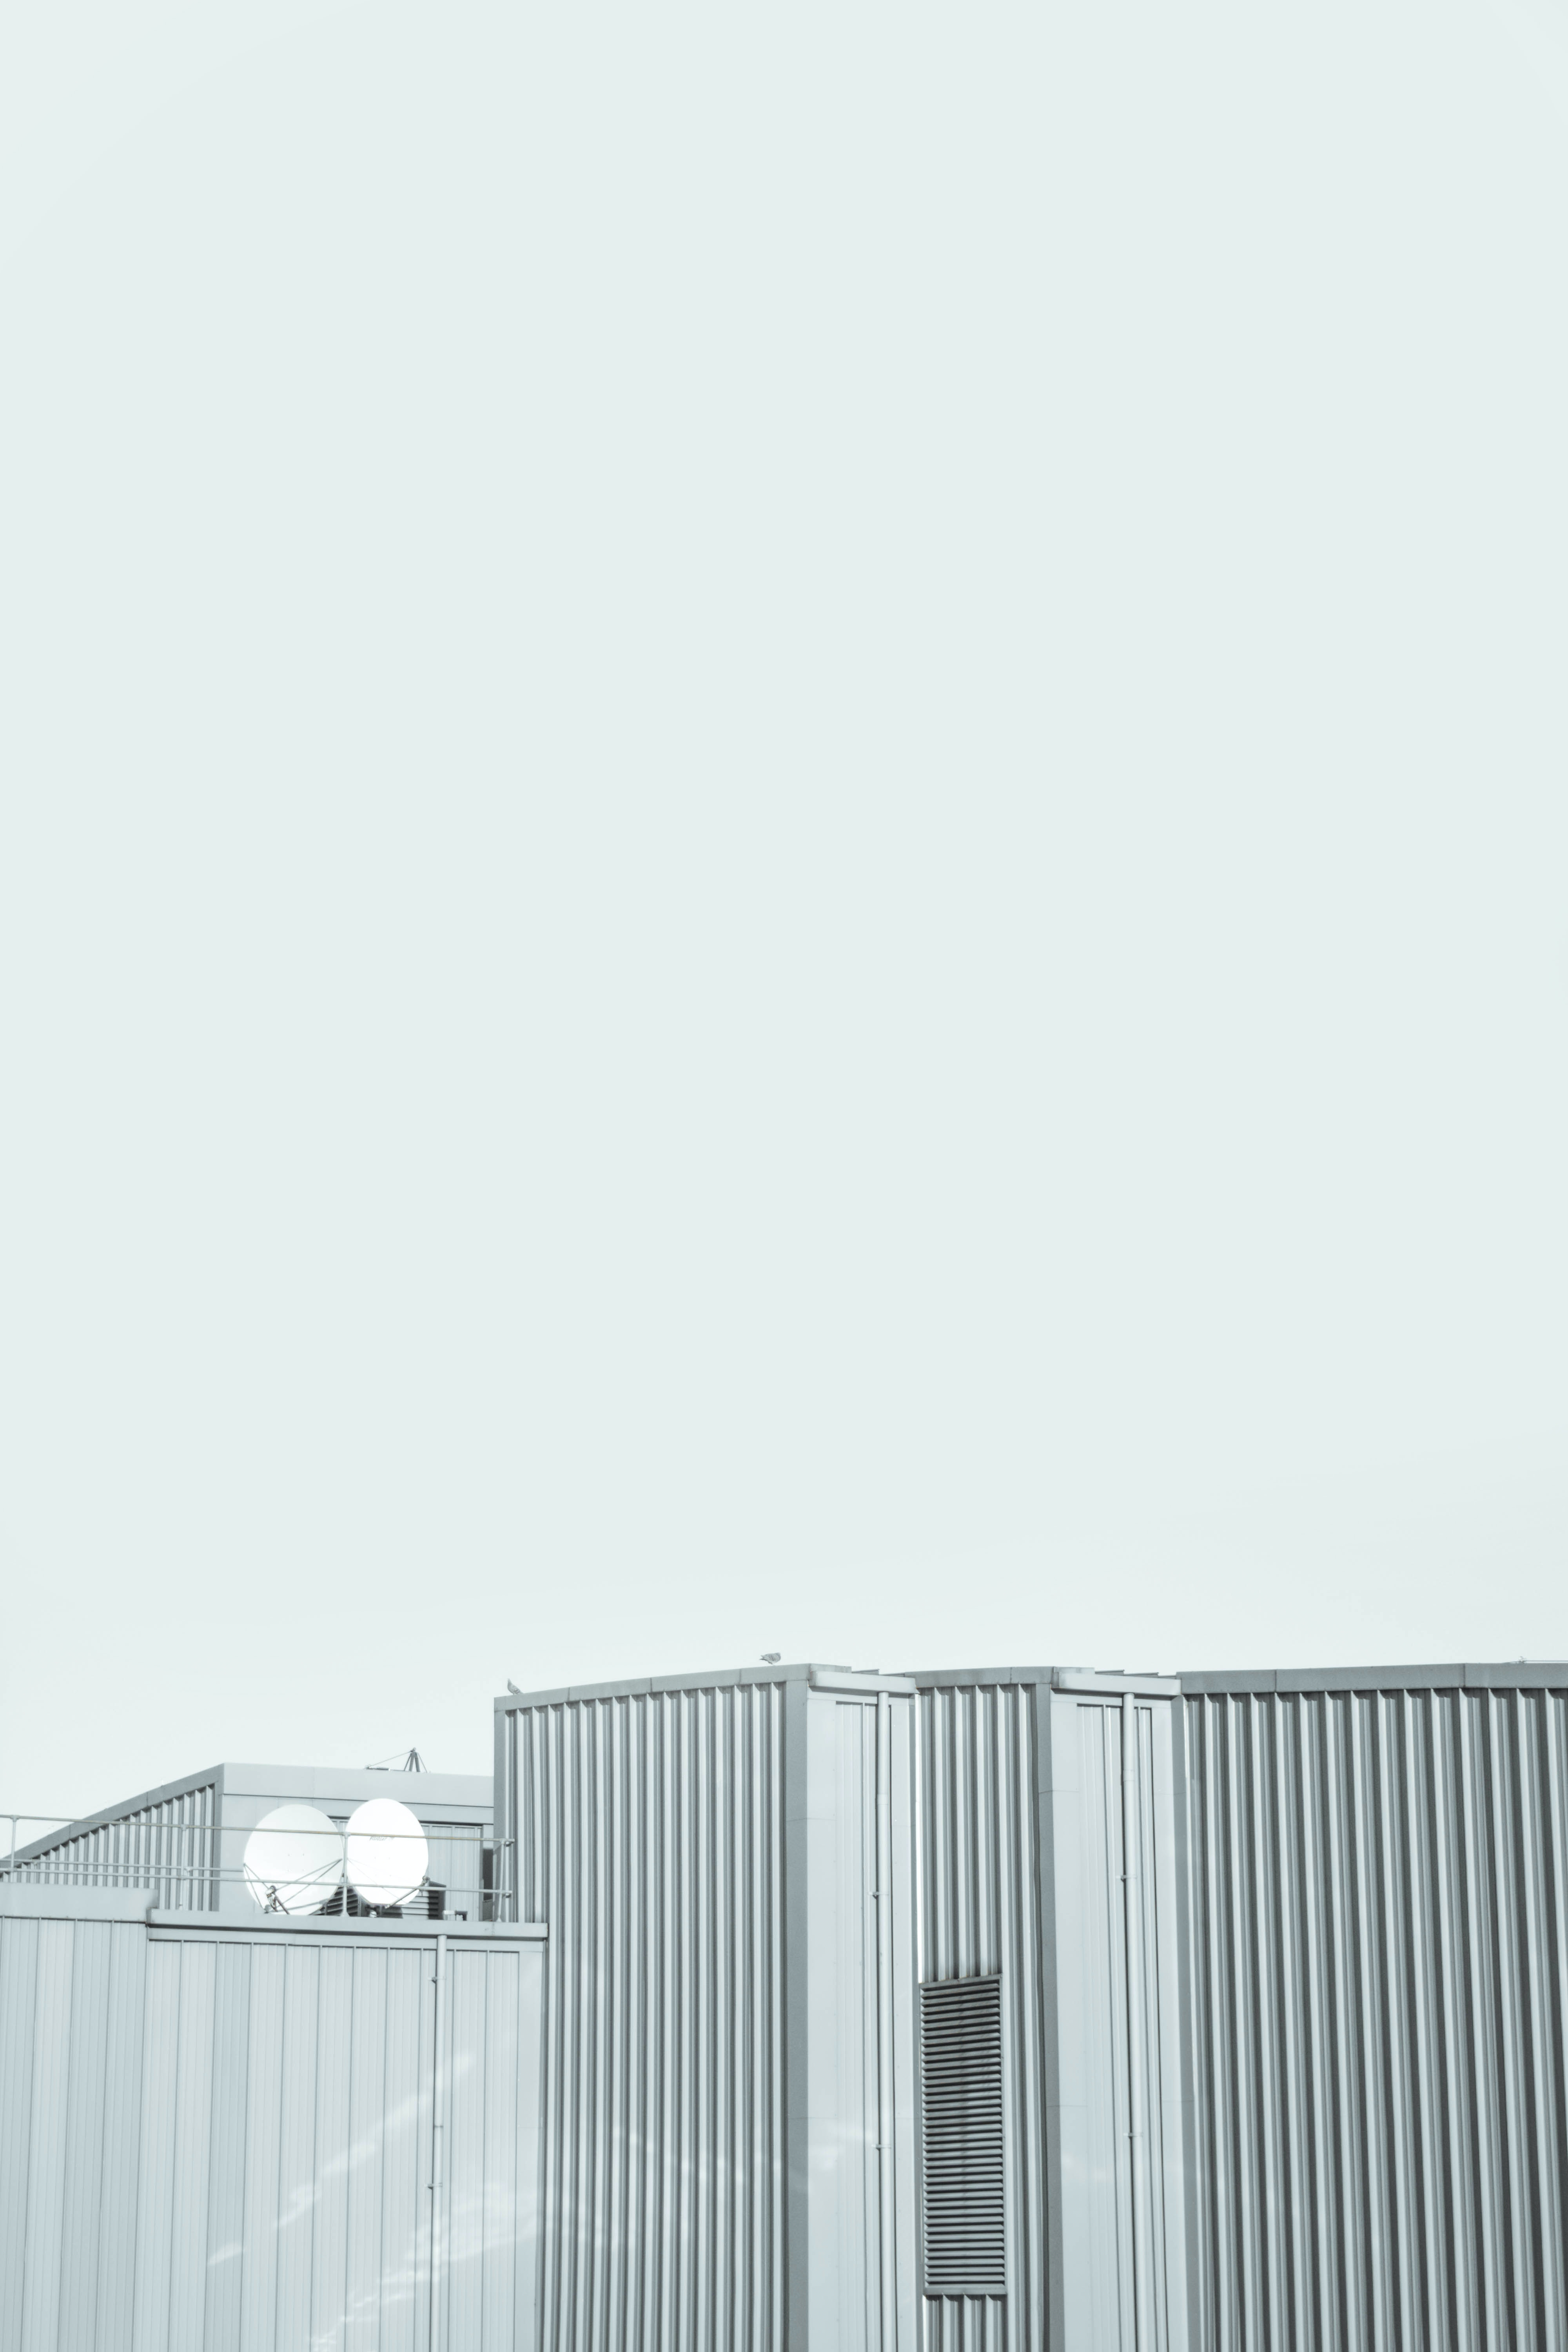 Gray walls of an industrial building under a white sky